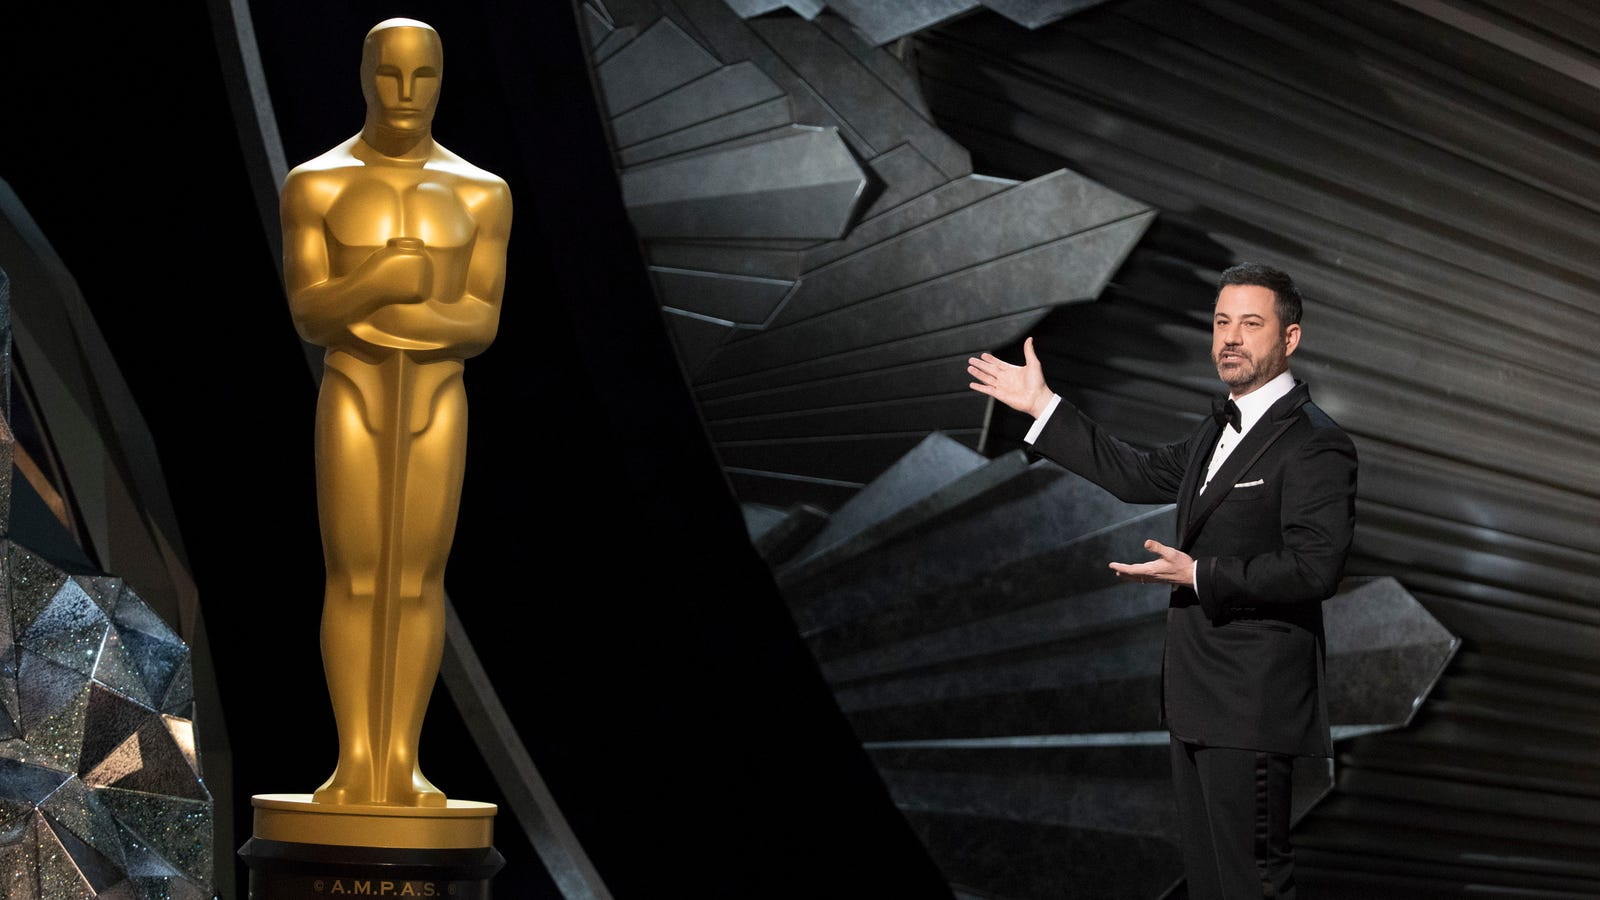 Of course ABC was behind the Oscars' big, dumb new changes